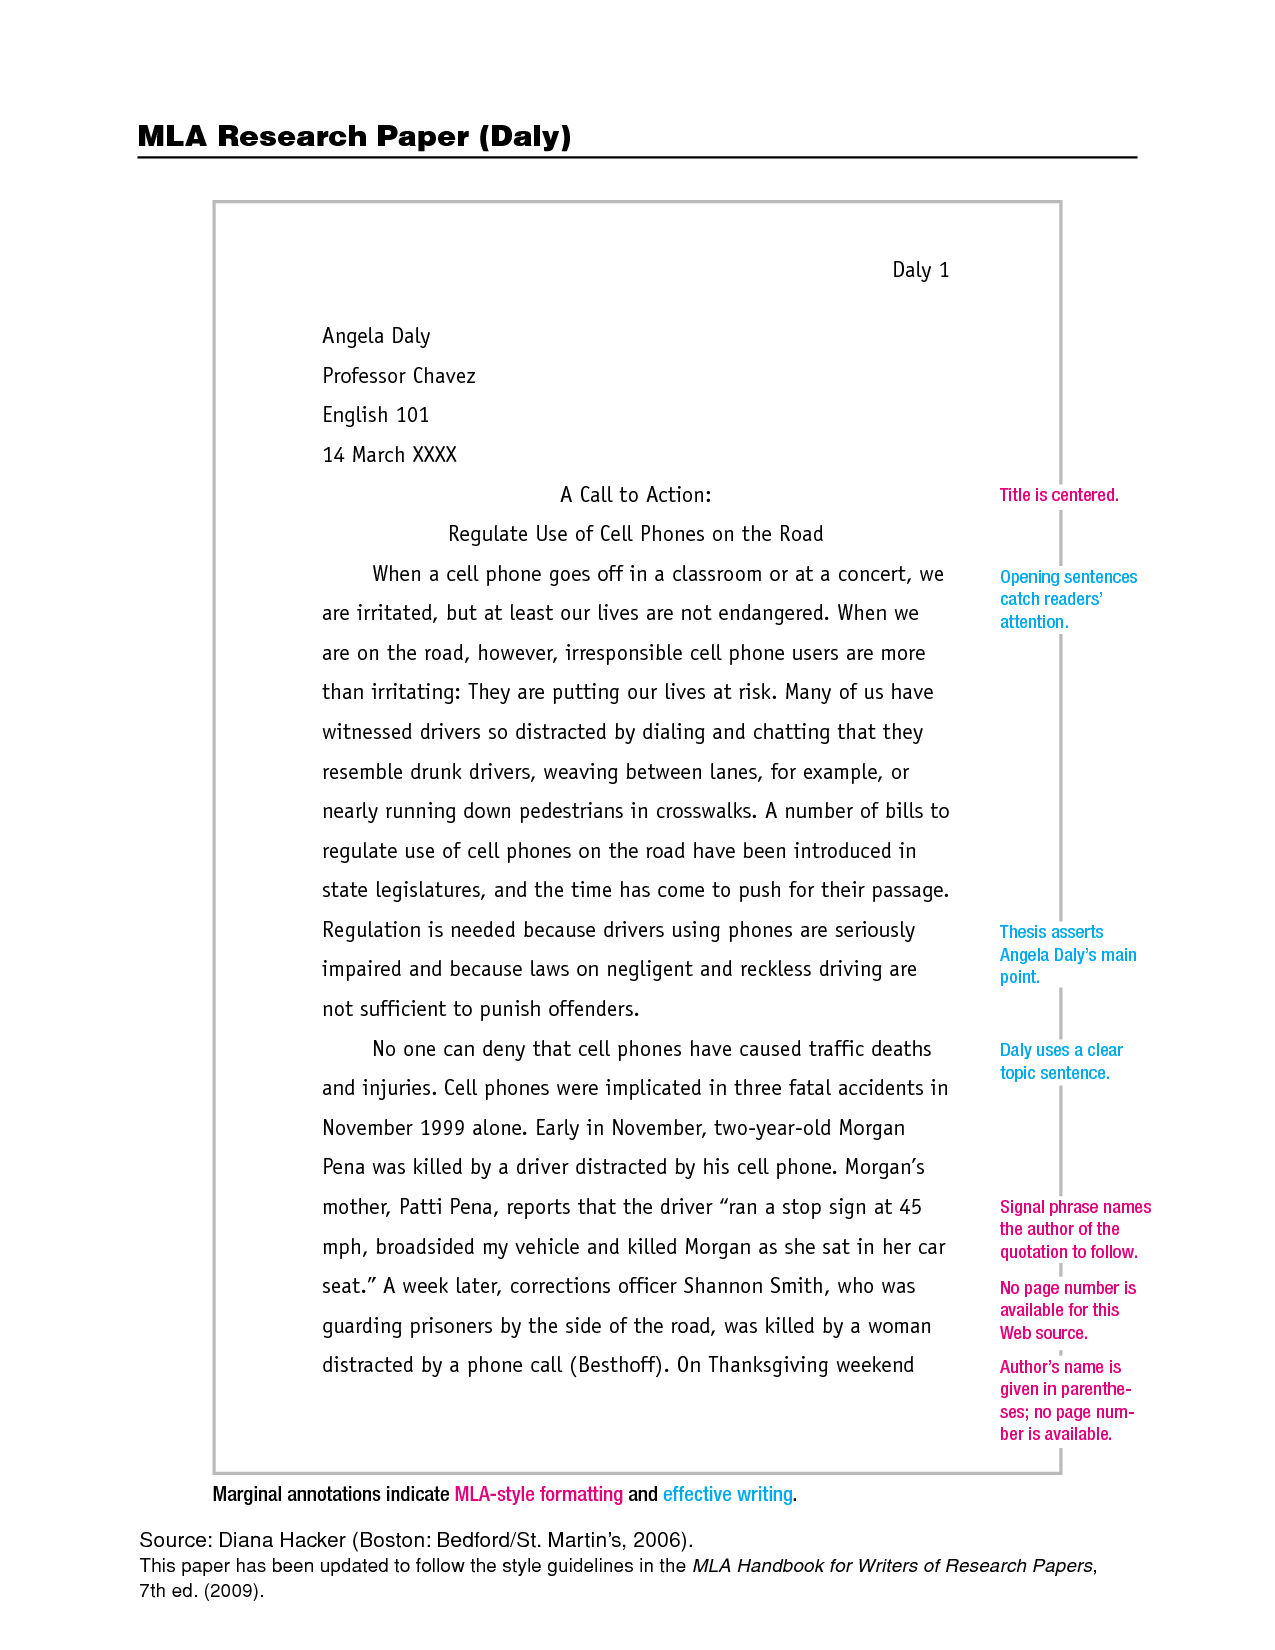 005 Research Paper Mla Formatting Instructions Wondrous Full